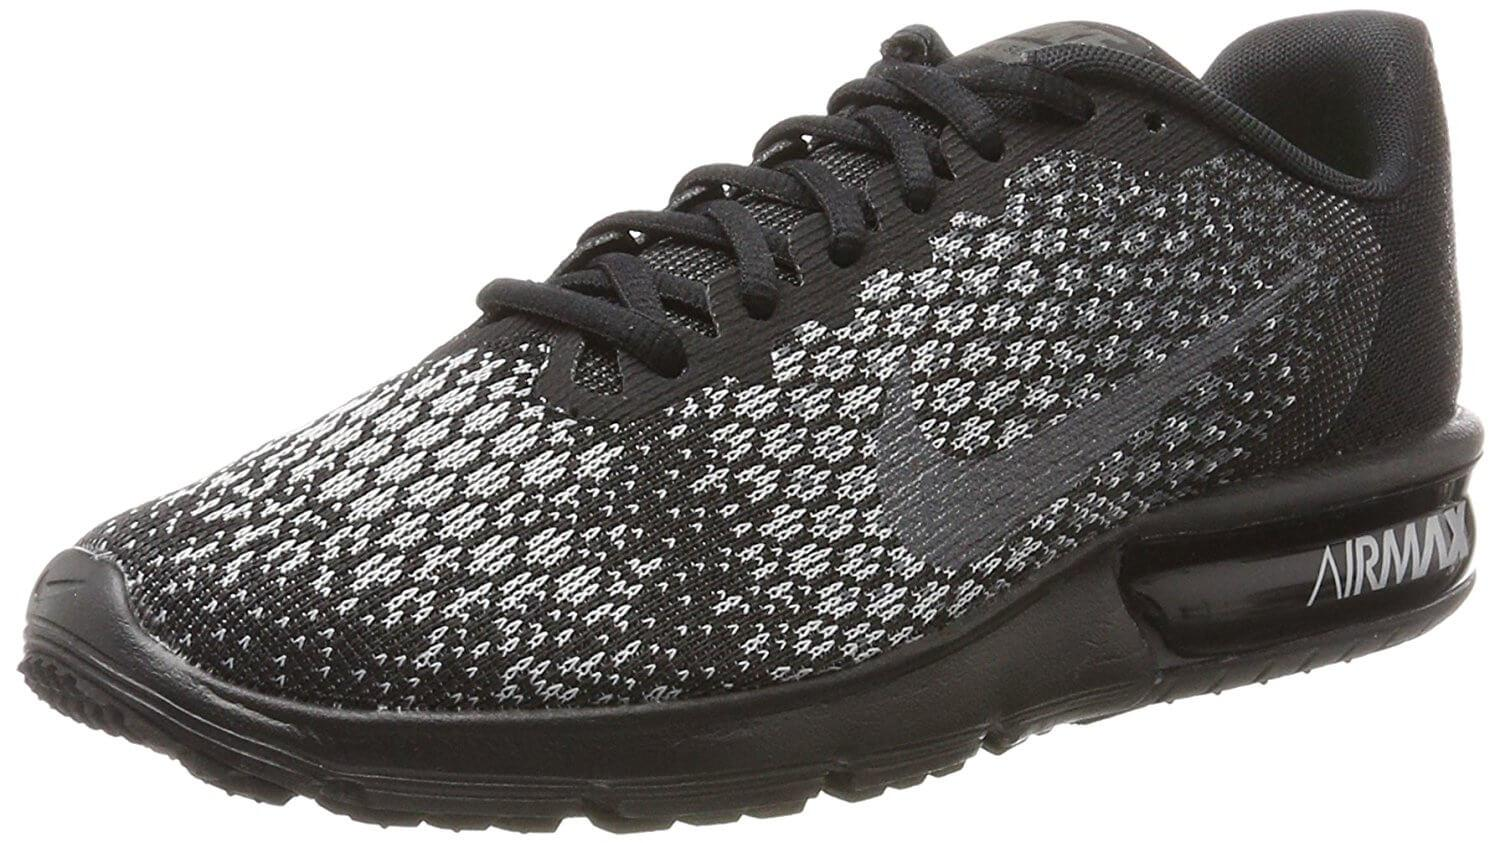 91d384dbc0f05 Nike Air Max Sequent 2 Review - Buy or Not in May 2019